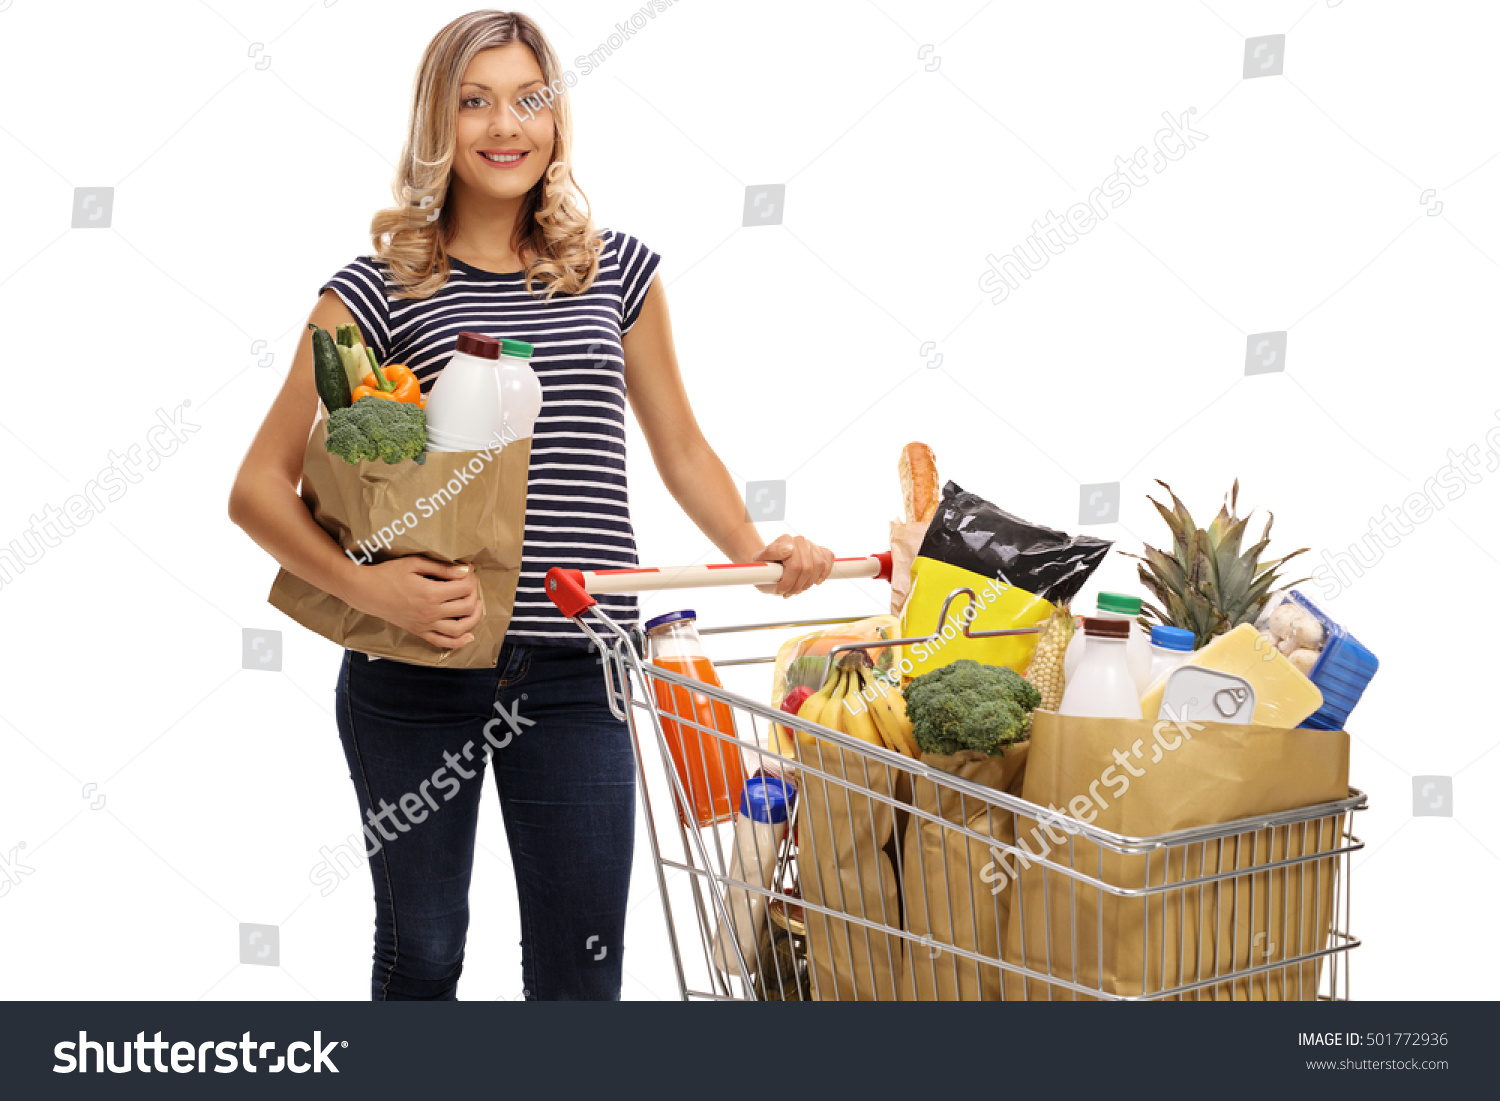 Woman posing with shopping bags isolated on white background full - Young Woman Posing With A Shopping Bag And A Shopping Cart Full Of Groceries Isolated On